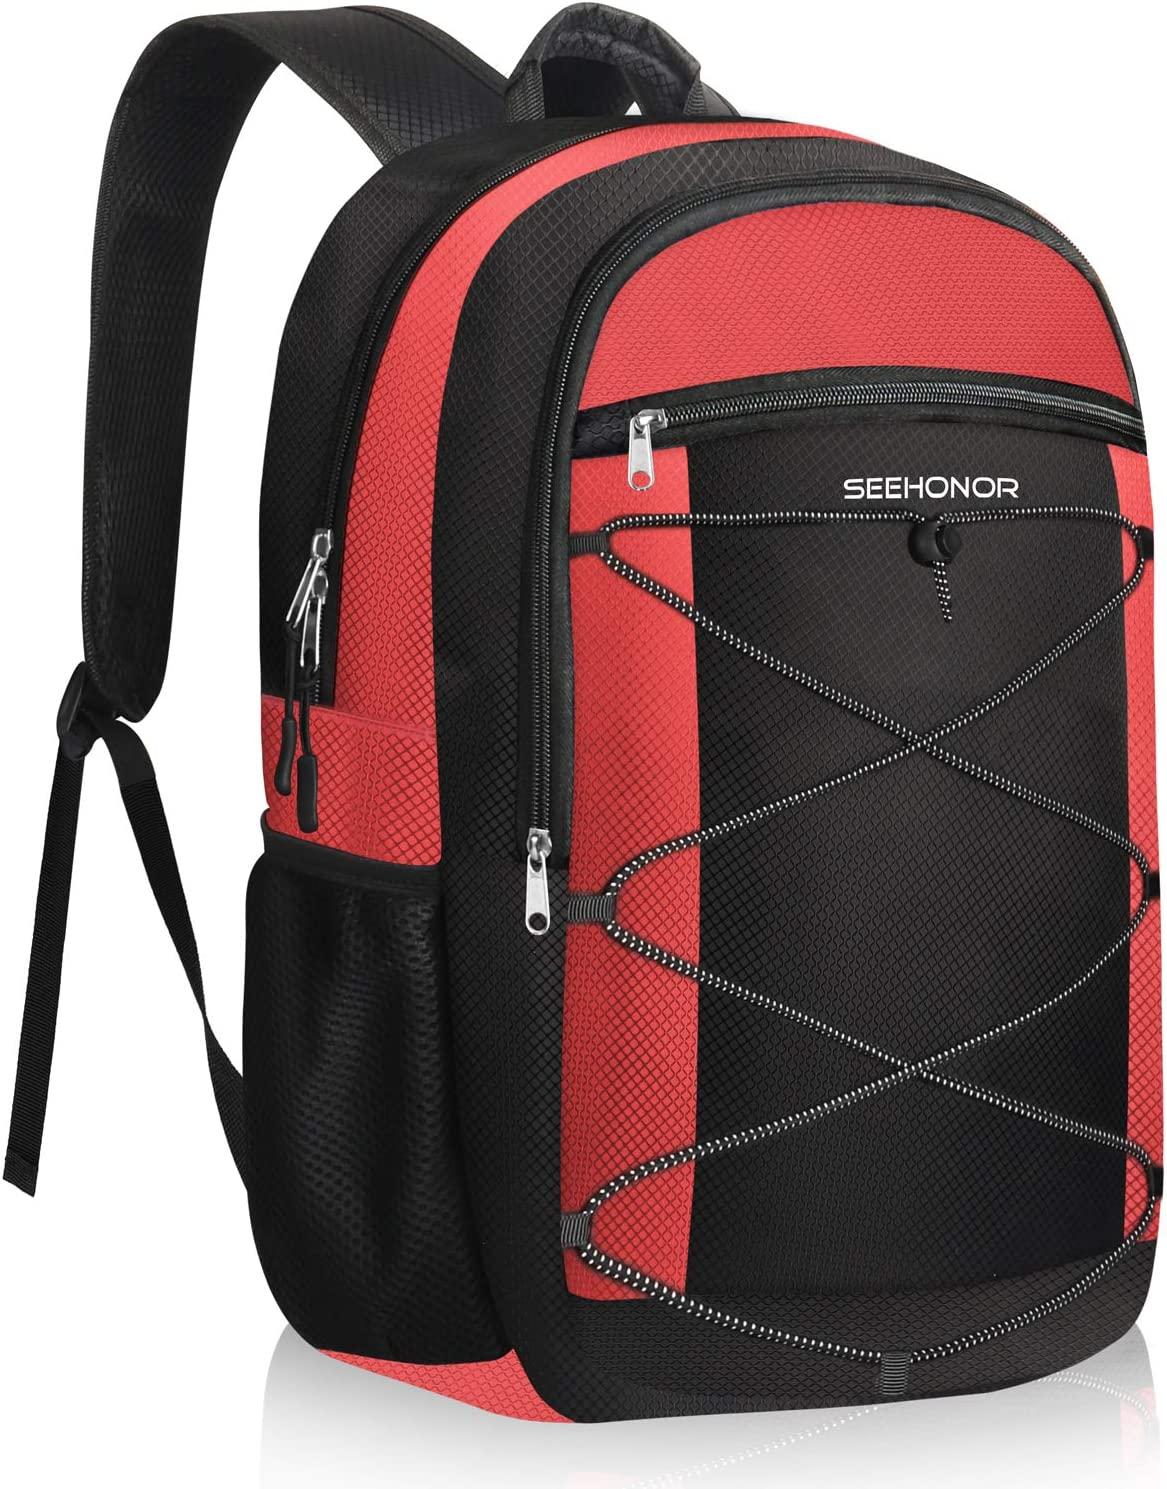 SEEHONOR Insulated Cooler Backpack, Soft Lightweight Leakproof Cooler Bag Multi Pockets Backpack Cooler for Mens Women to Backpacking Camping Hiking Picnic Beach Travel Outdoor Trips, 25 Cans